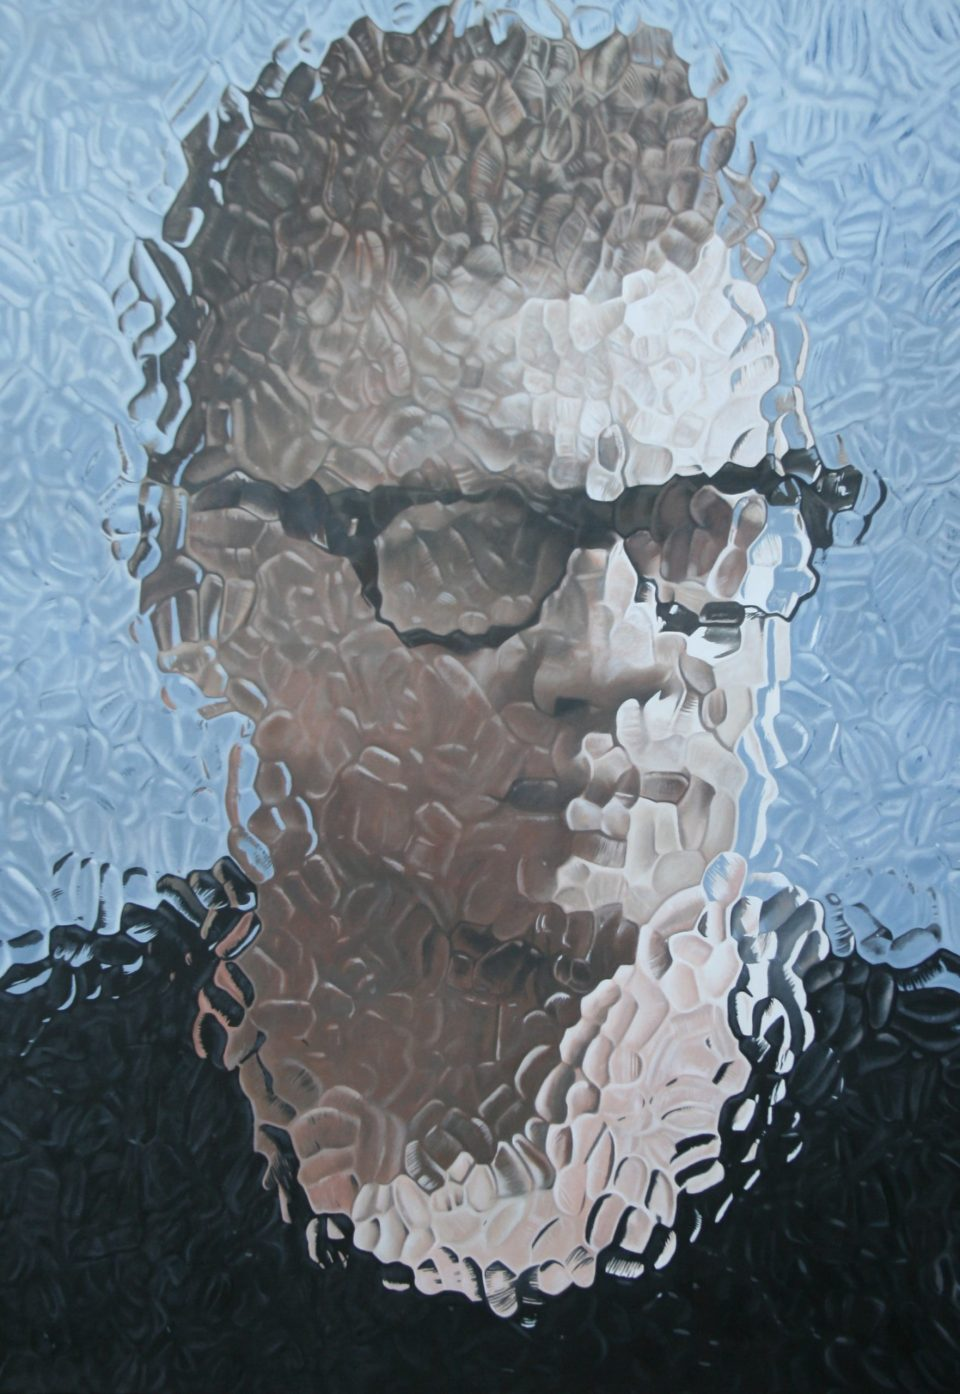 Self Portrait by John McCarthy